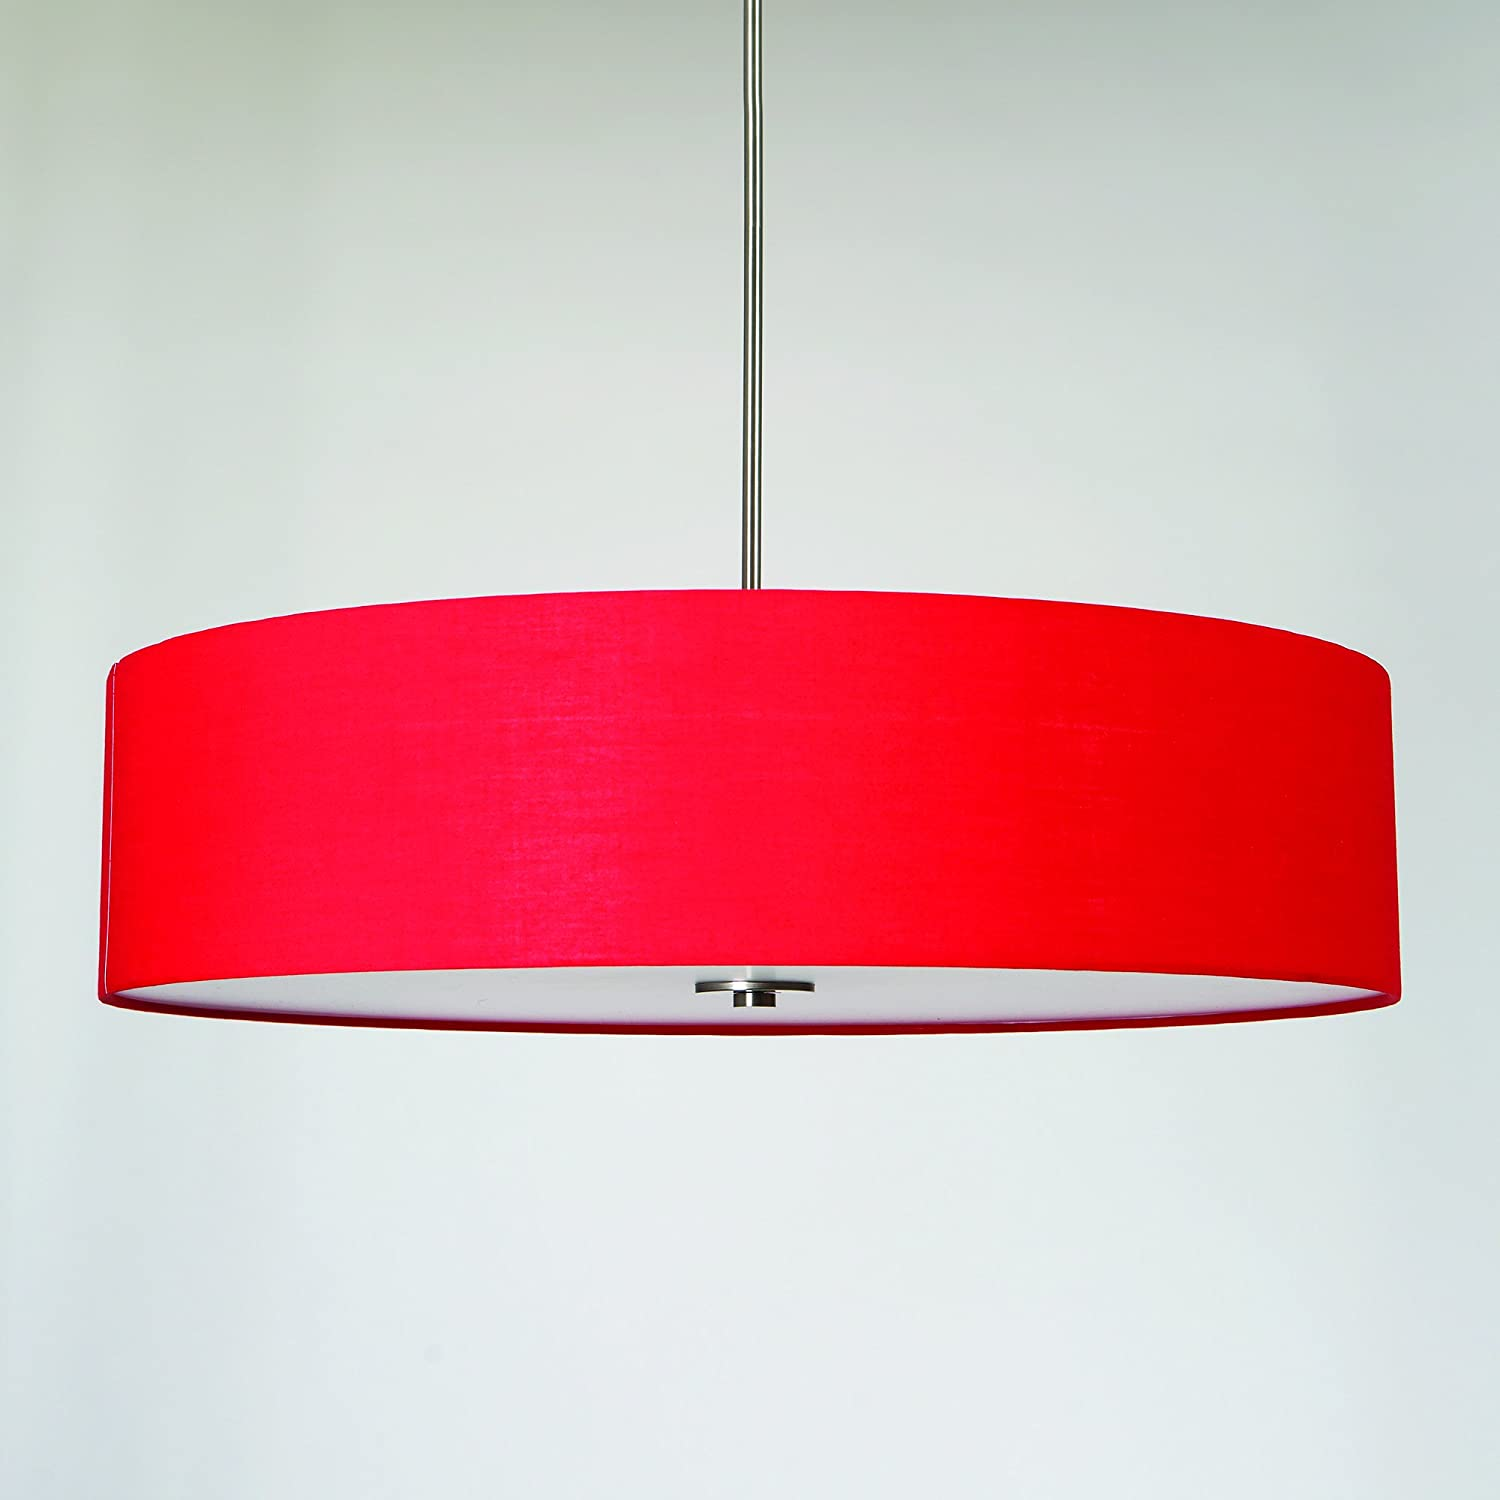 Yosemite Home Decor SH3007-5P-CPRS Lyell Forks Family 5-Light Satin Steel Pendant with Chili Pepper Red Drum Shade, Red